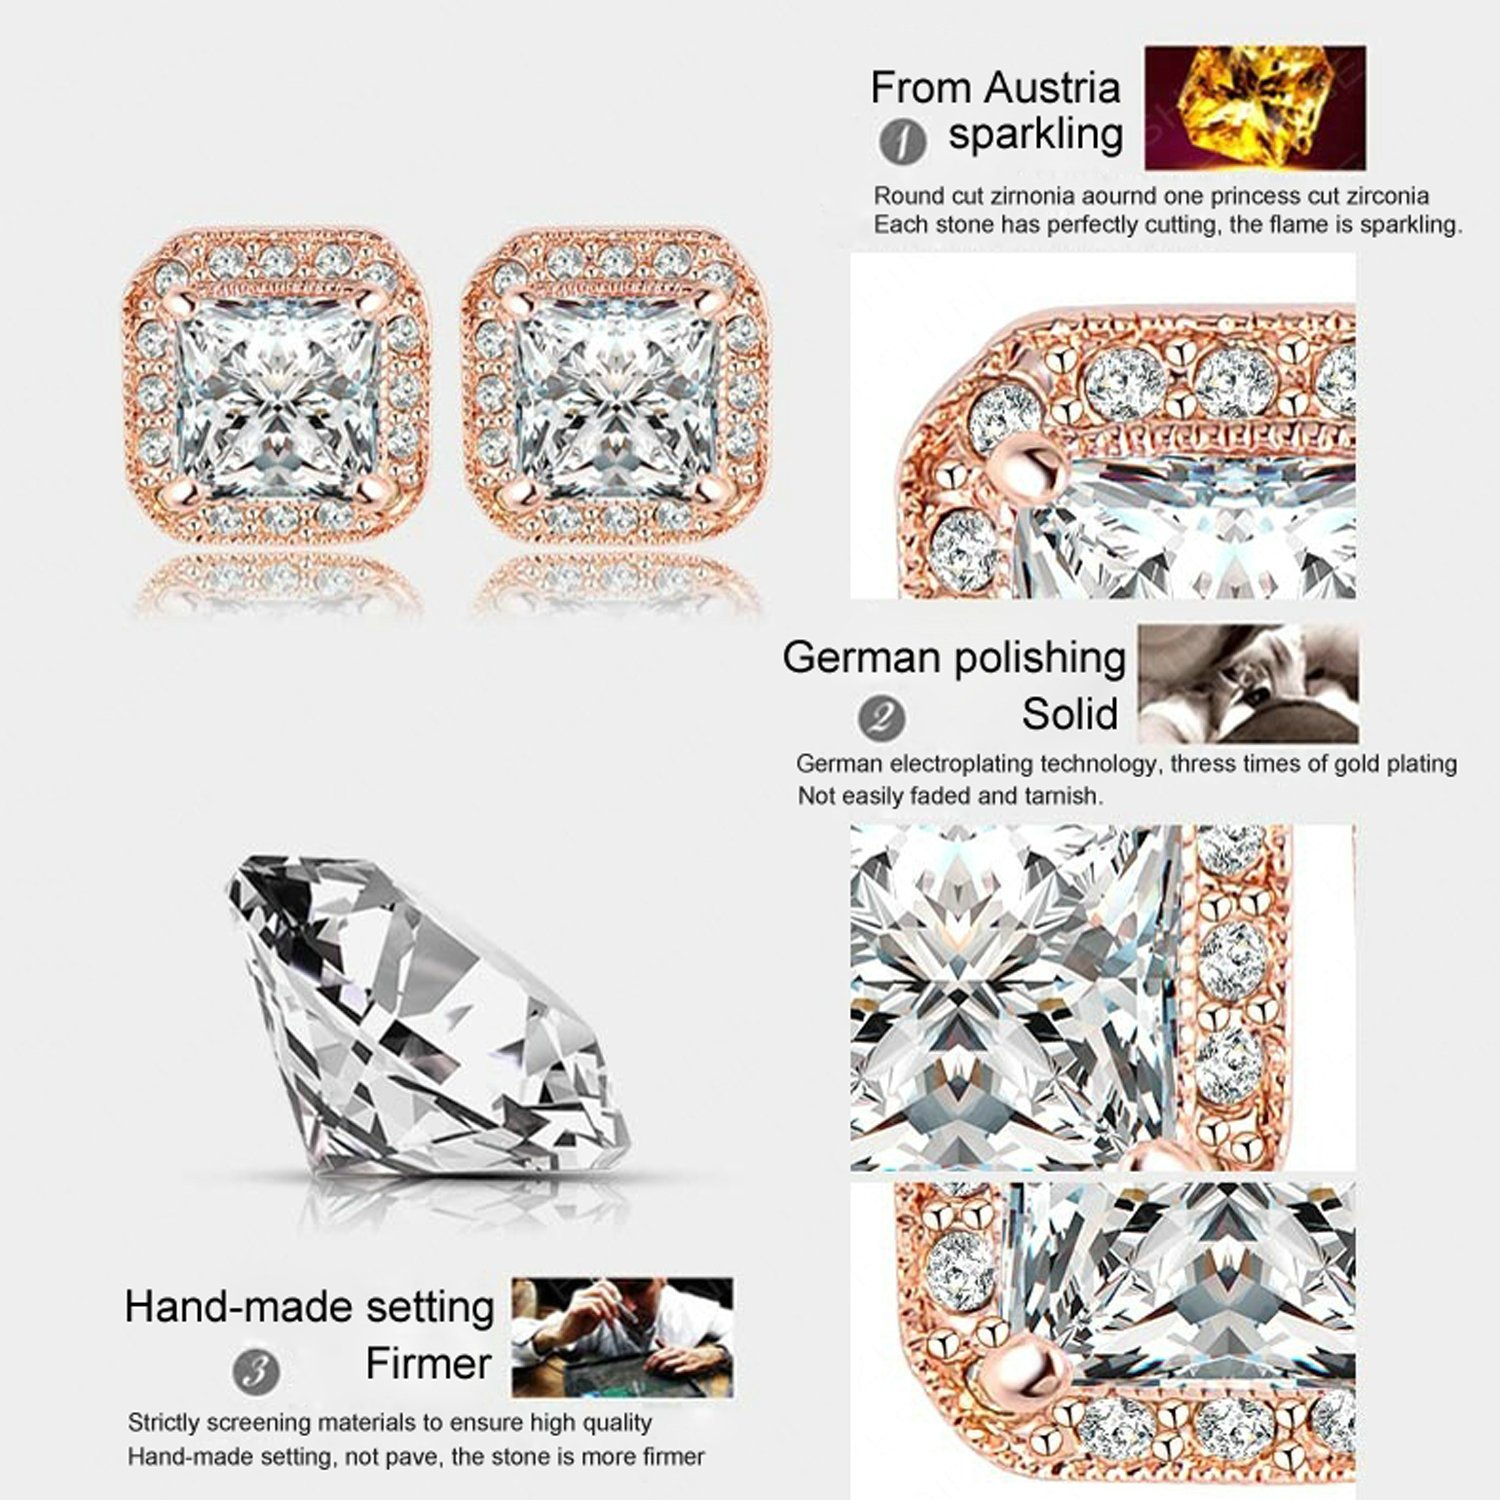 AnaZoz Jewelry 18K Gold Plated Square Stud Earring Rose Gold Plate/Platinum Plated SWA Elements Austrian Crystals Earrings by AnaZoz (Image #4)